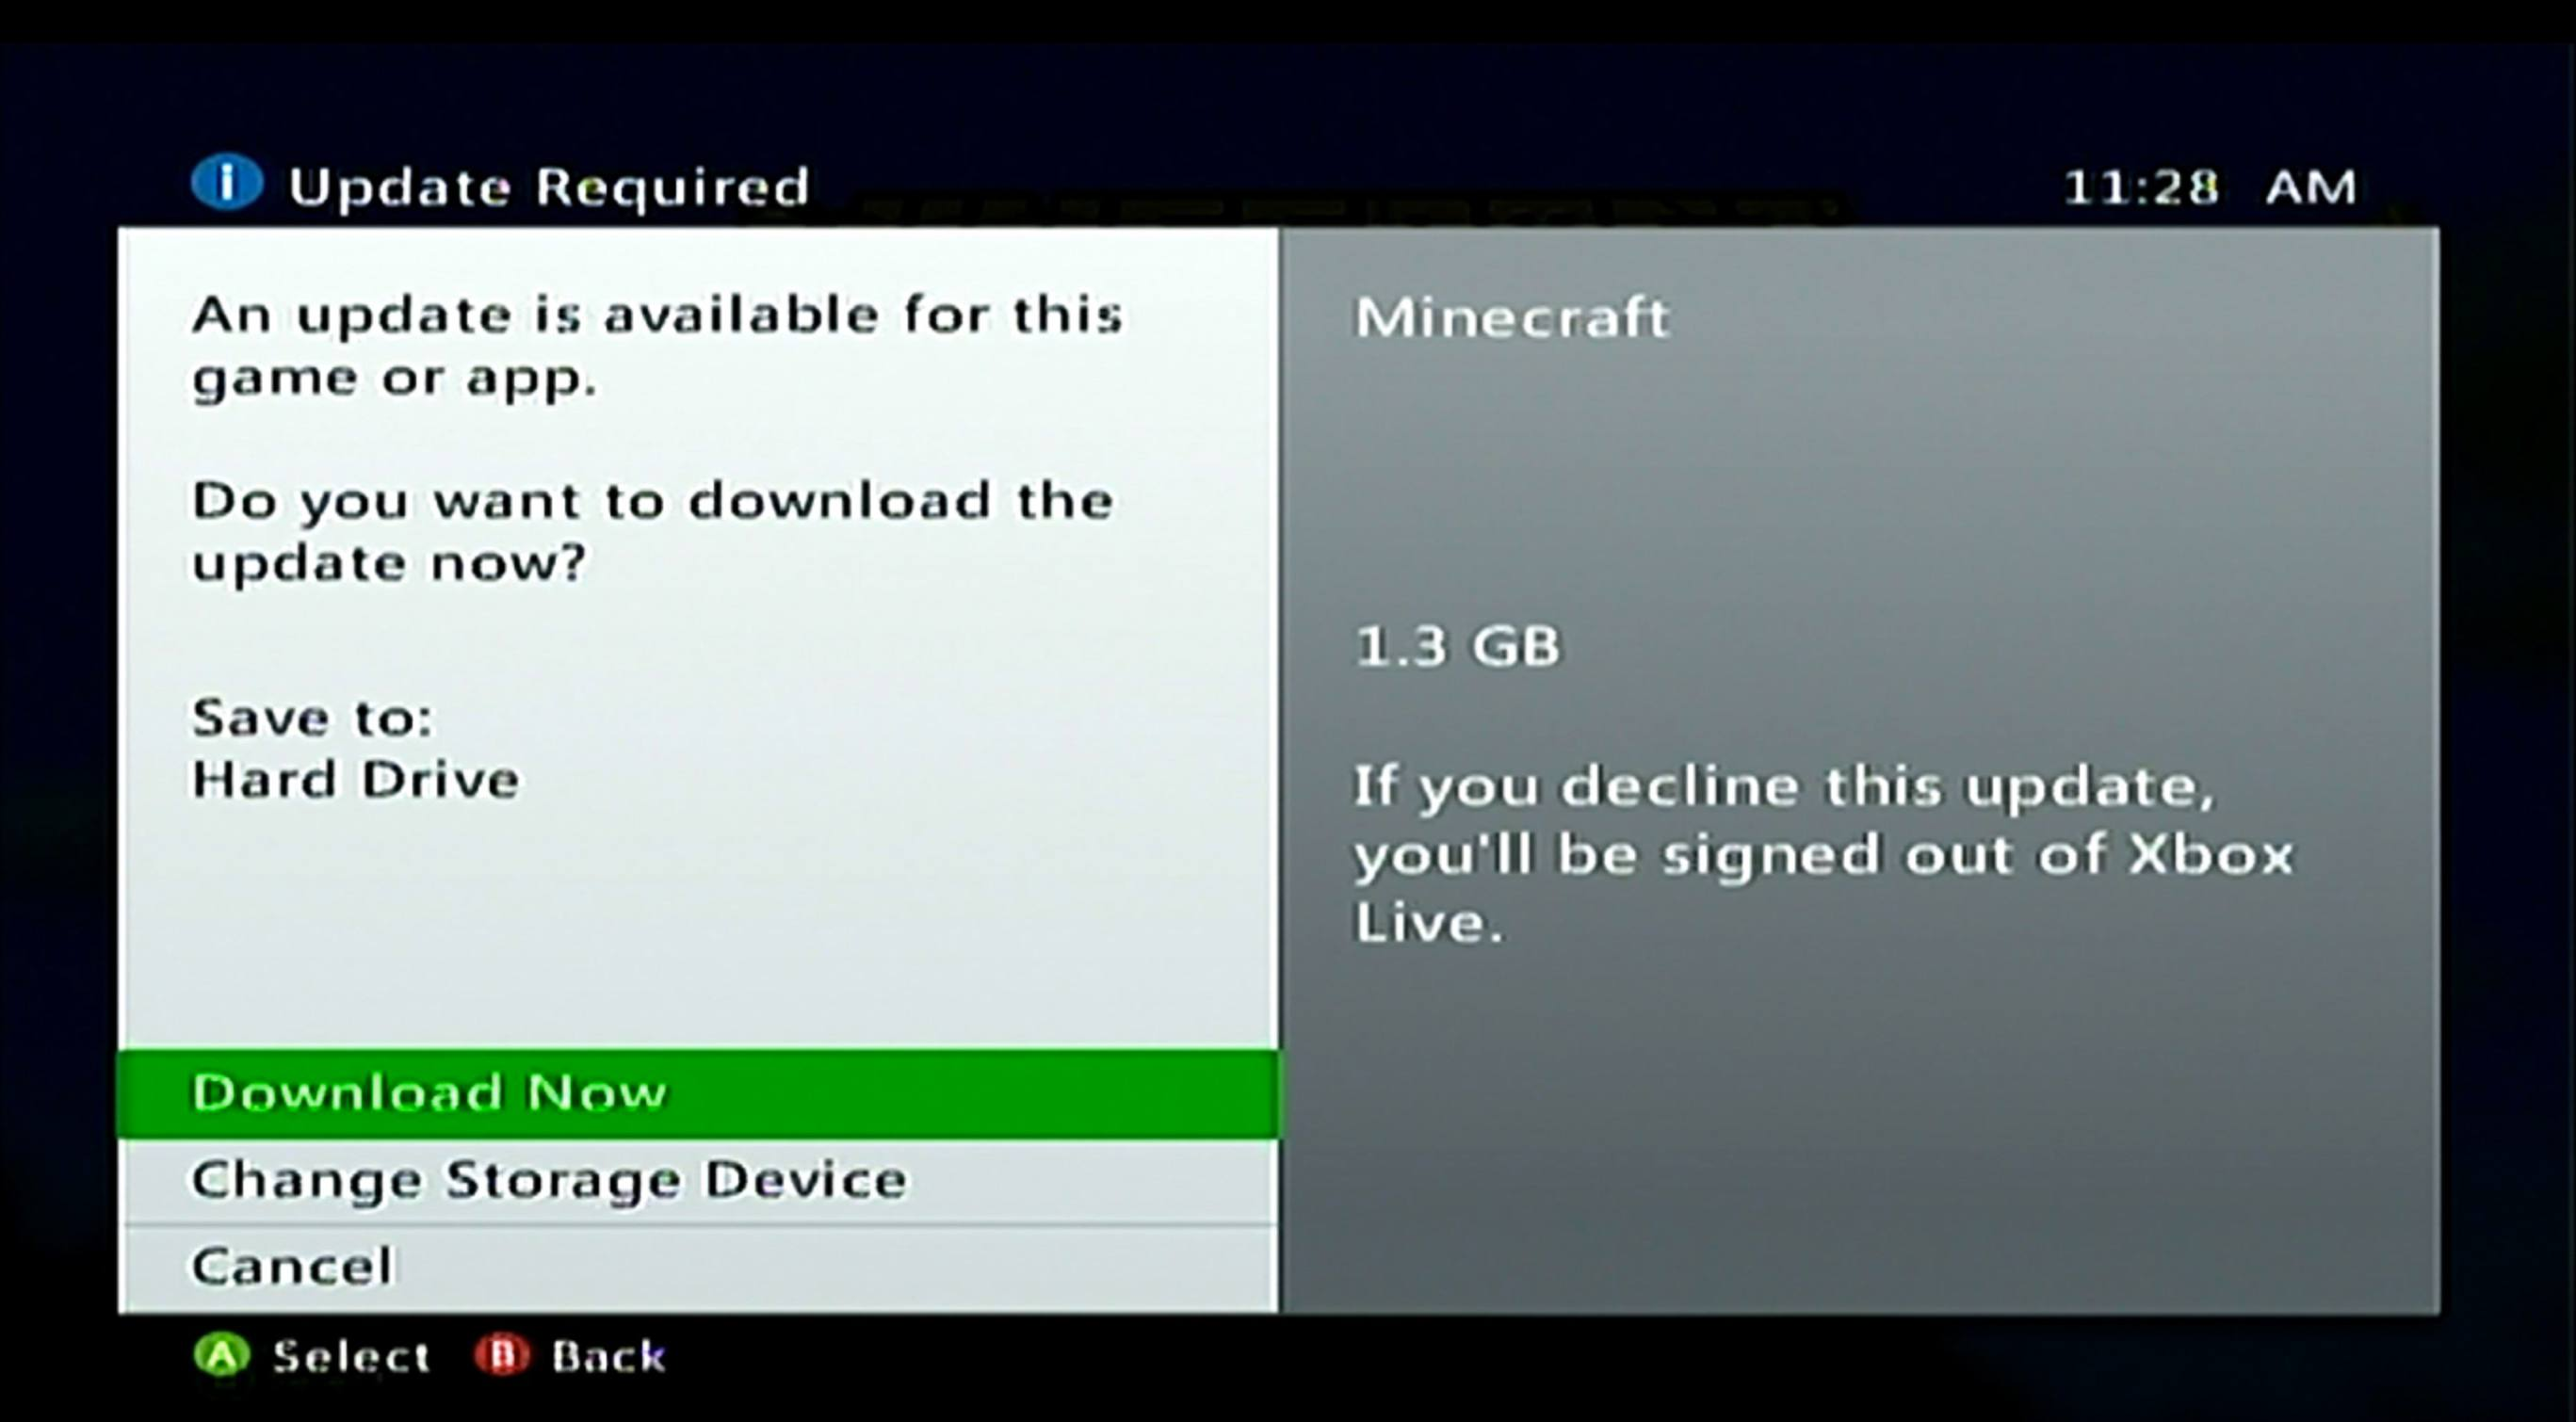 How to Update Minecraft on Xbox 360